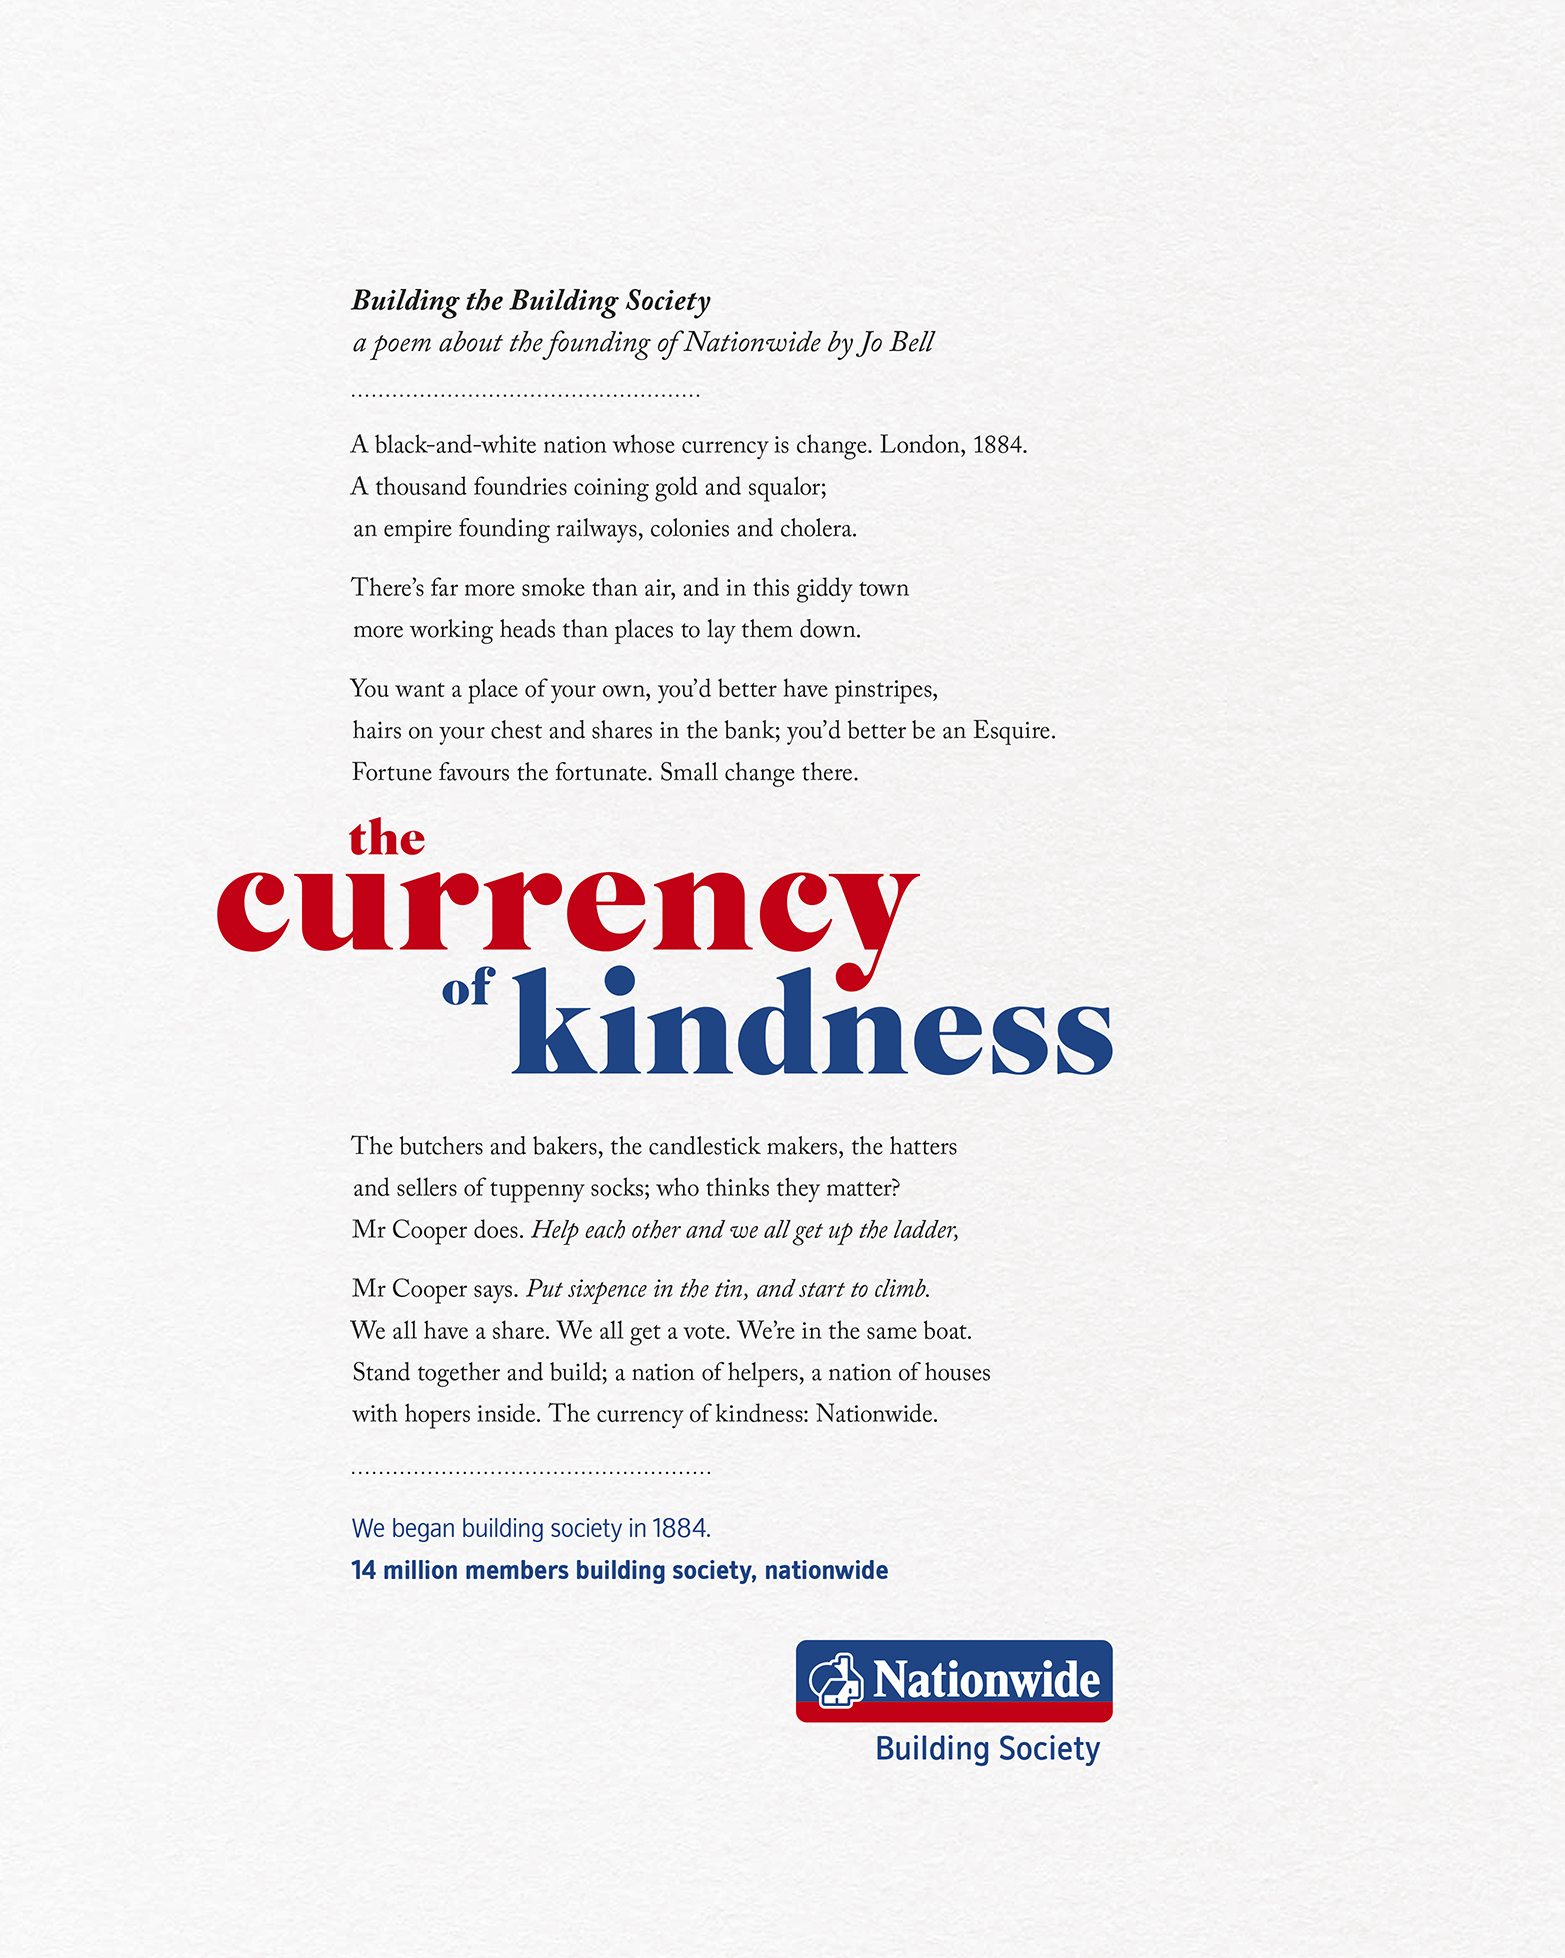 This ad is about the founding of Nationwide by Charles Cooper